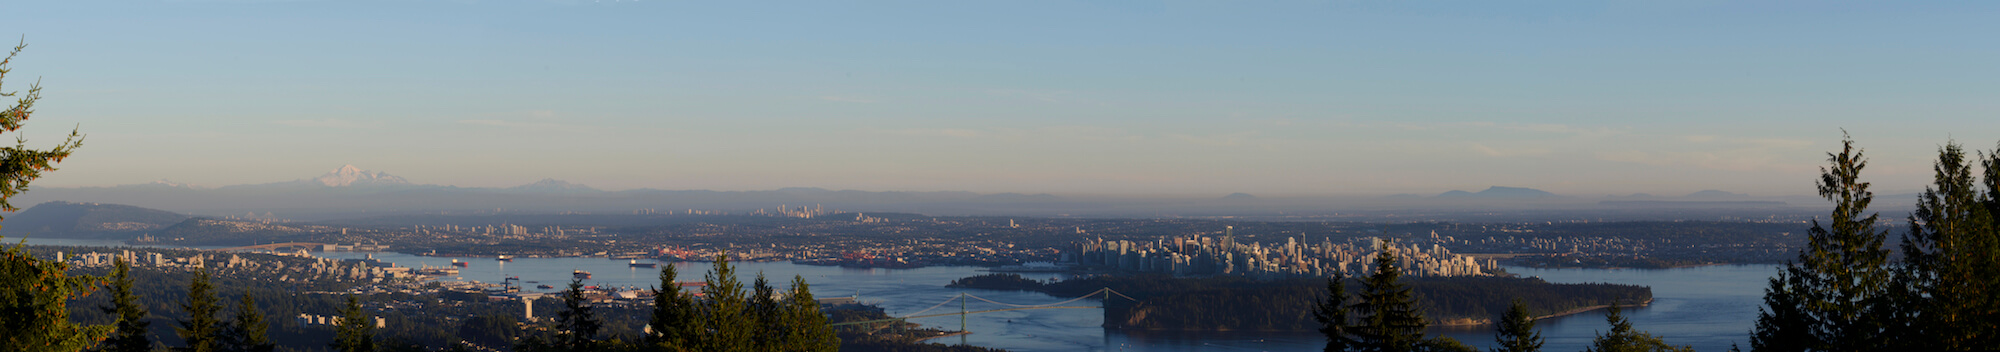 Say a final goodbye to Vancouver from the Cypress viewpoint.